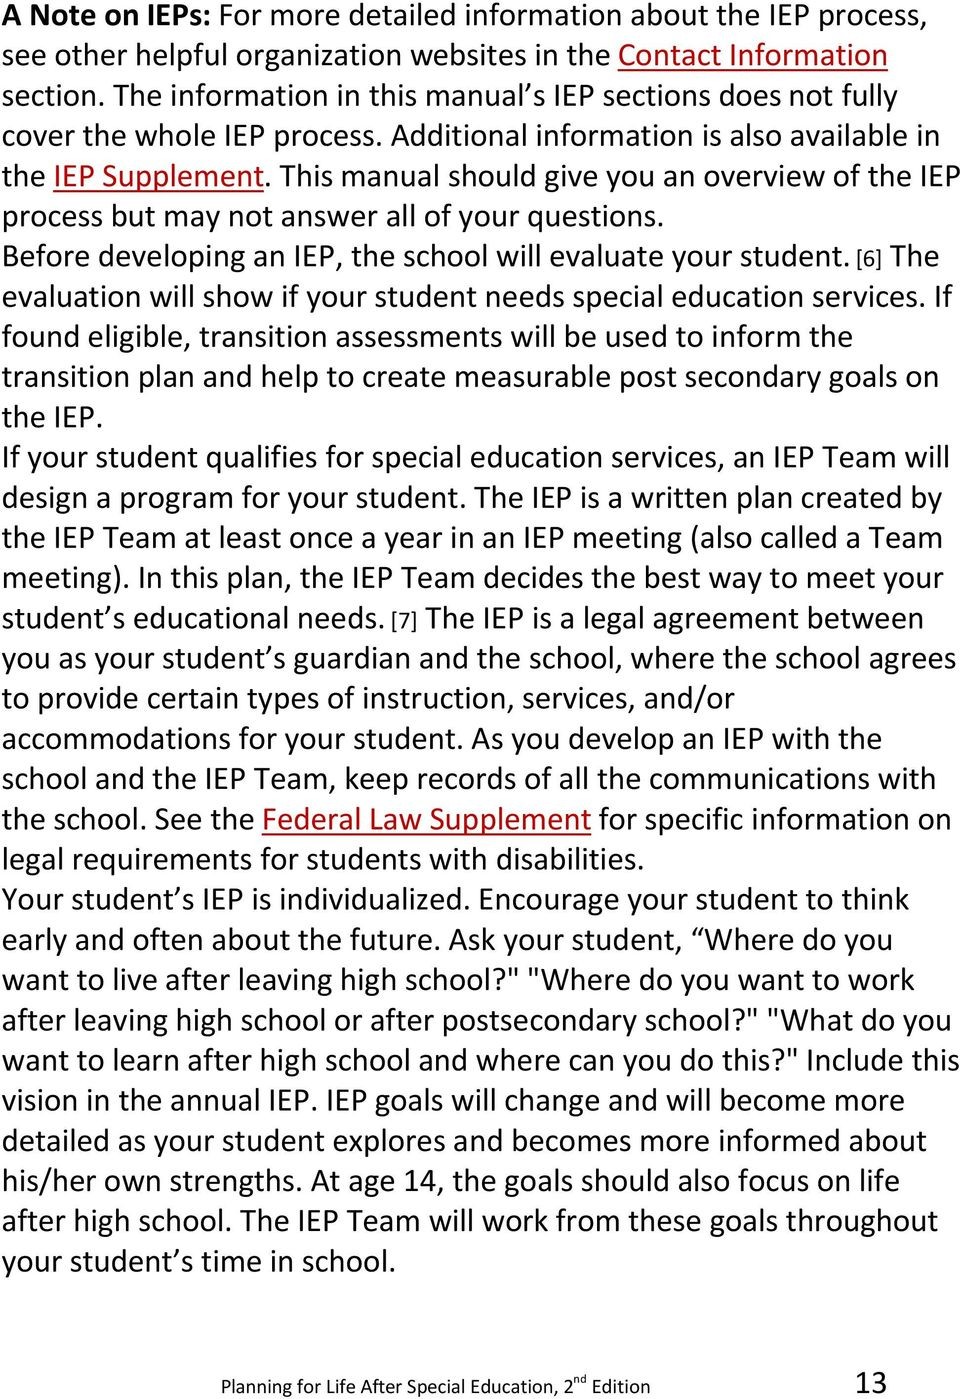 This manual should give you an overview of the IEP process but may not answer all of your questions. Before developing an IEP, the school will evaluate your student.